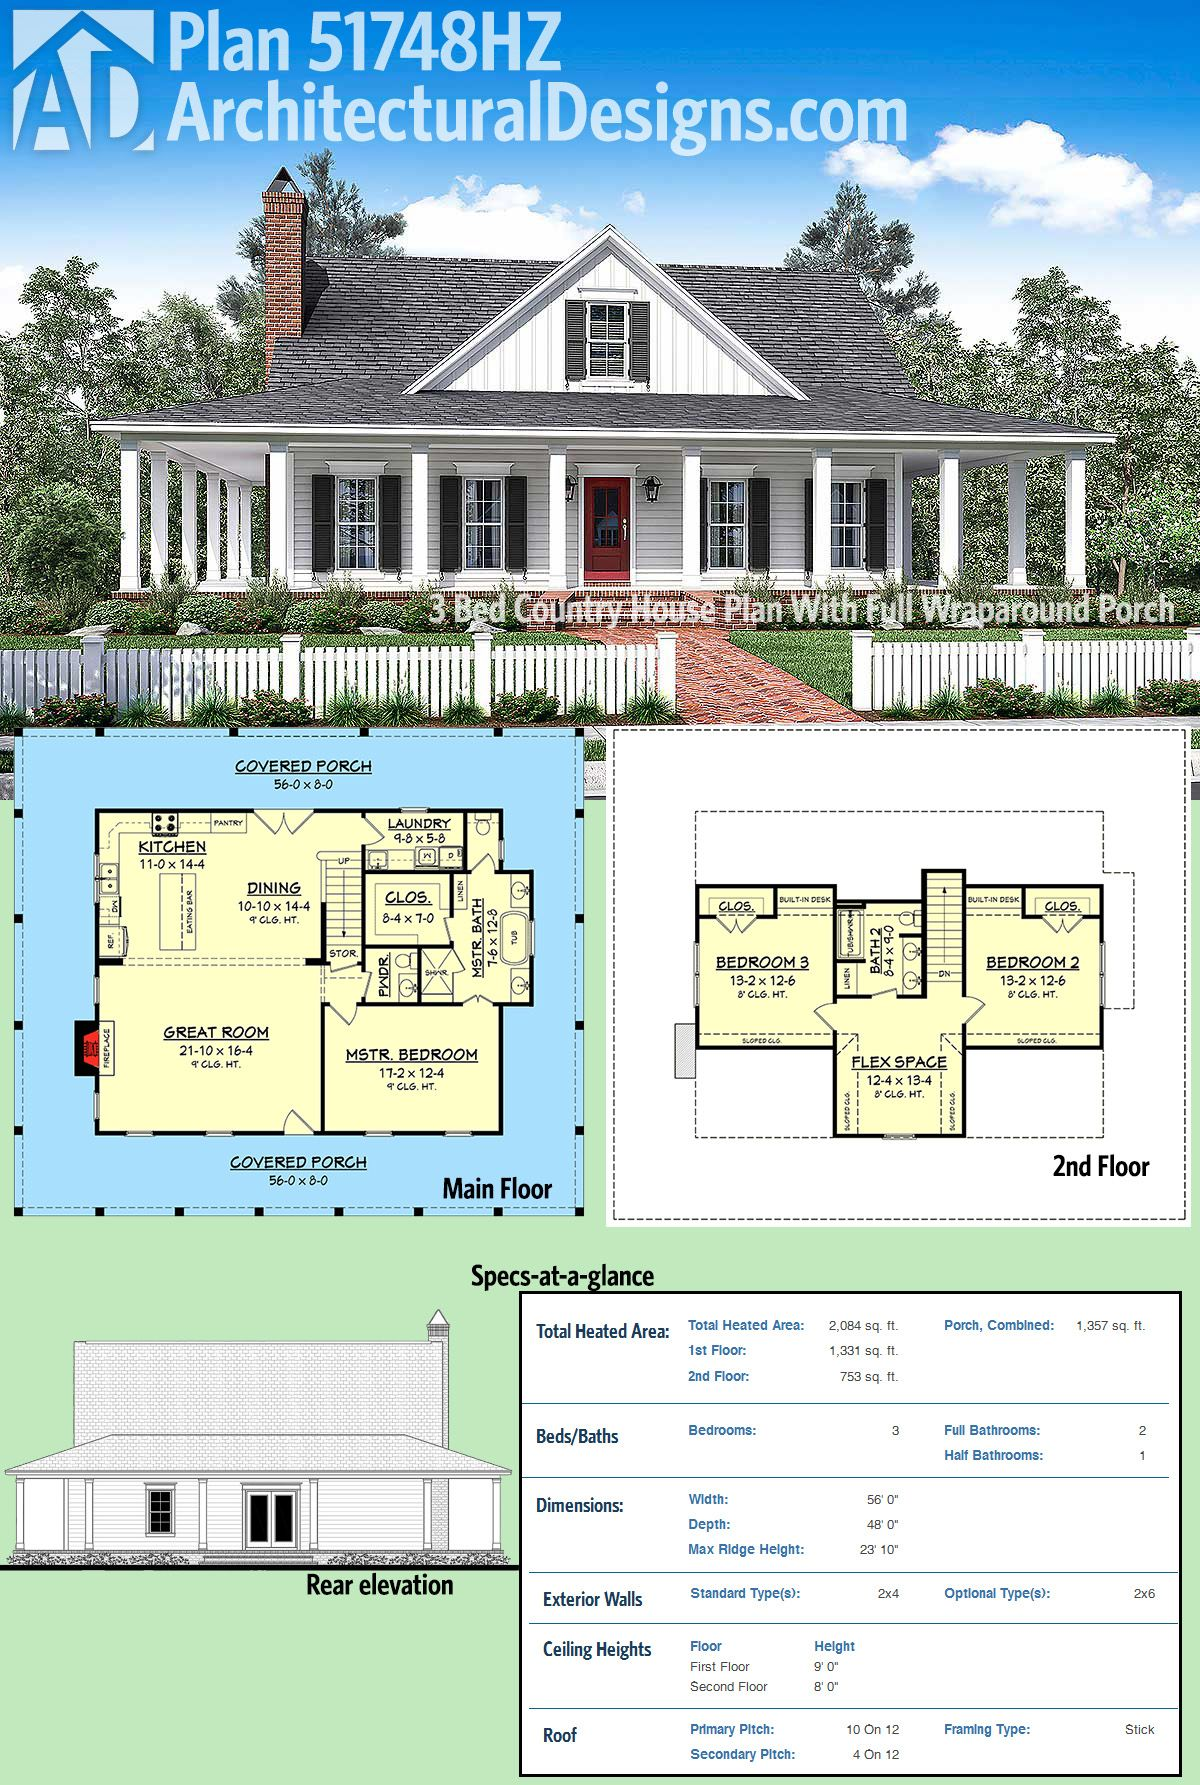 Architectural designs house plan 51748hz gives you a full wraparound porch outside and an open concept floor plan inside ready when you are